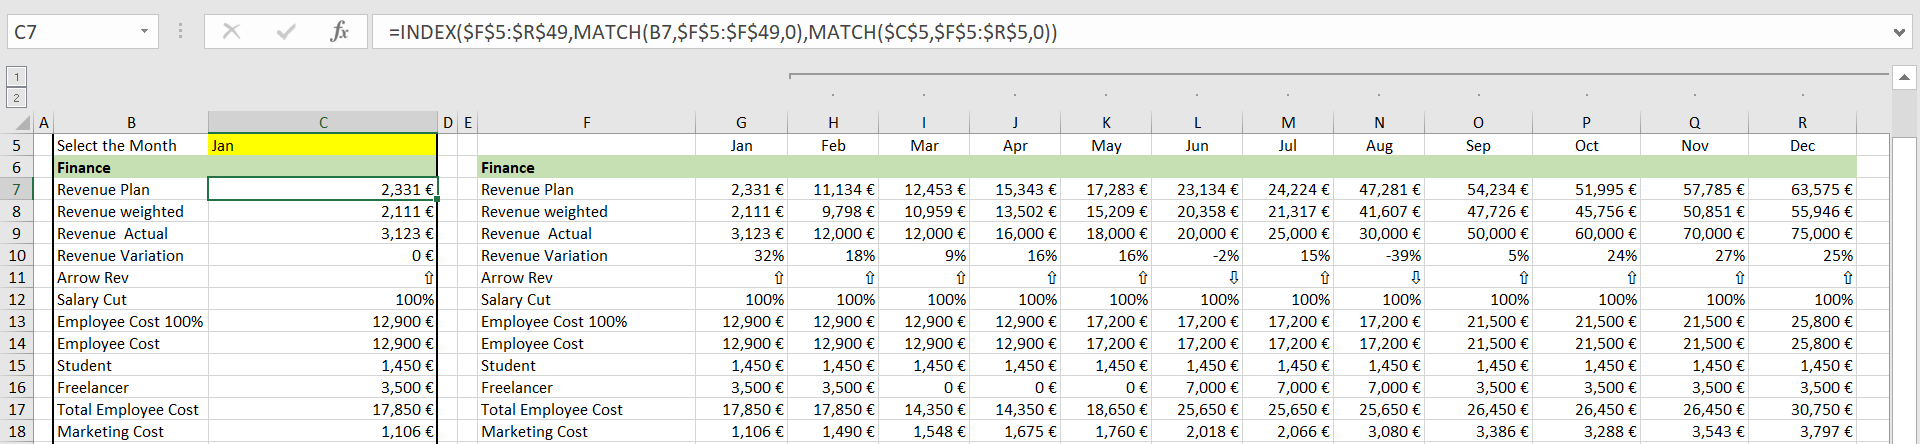 excel-monthly-report-04.png